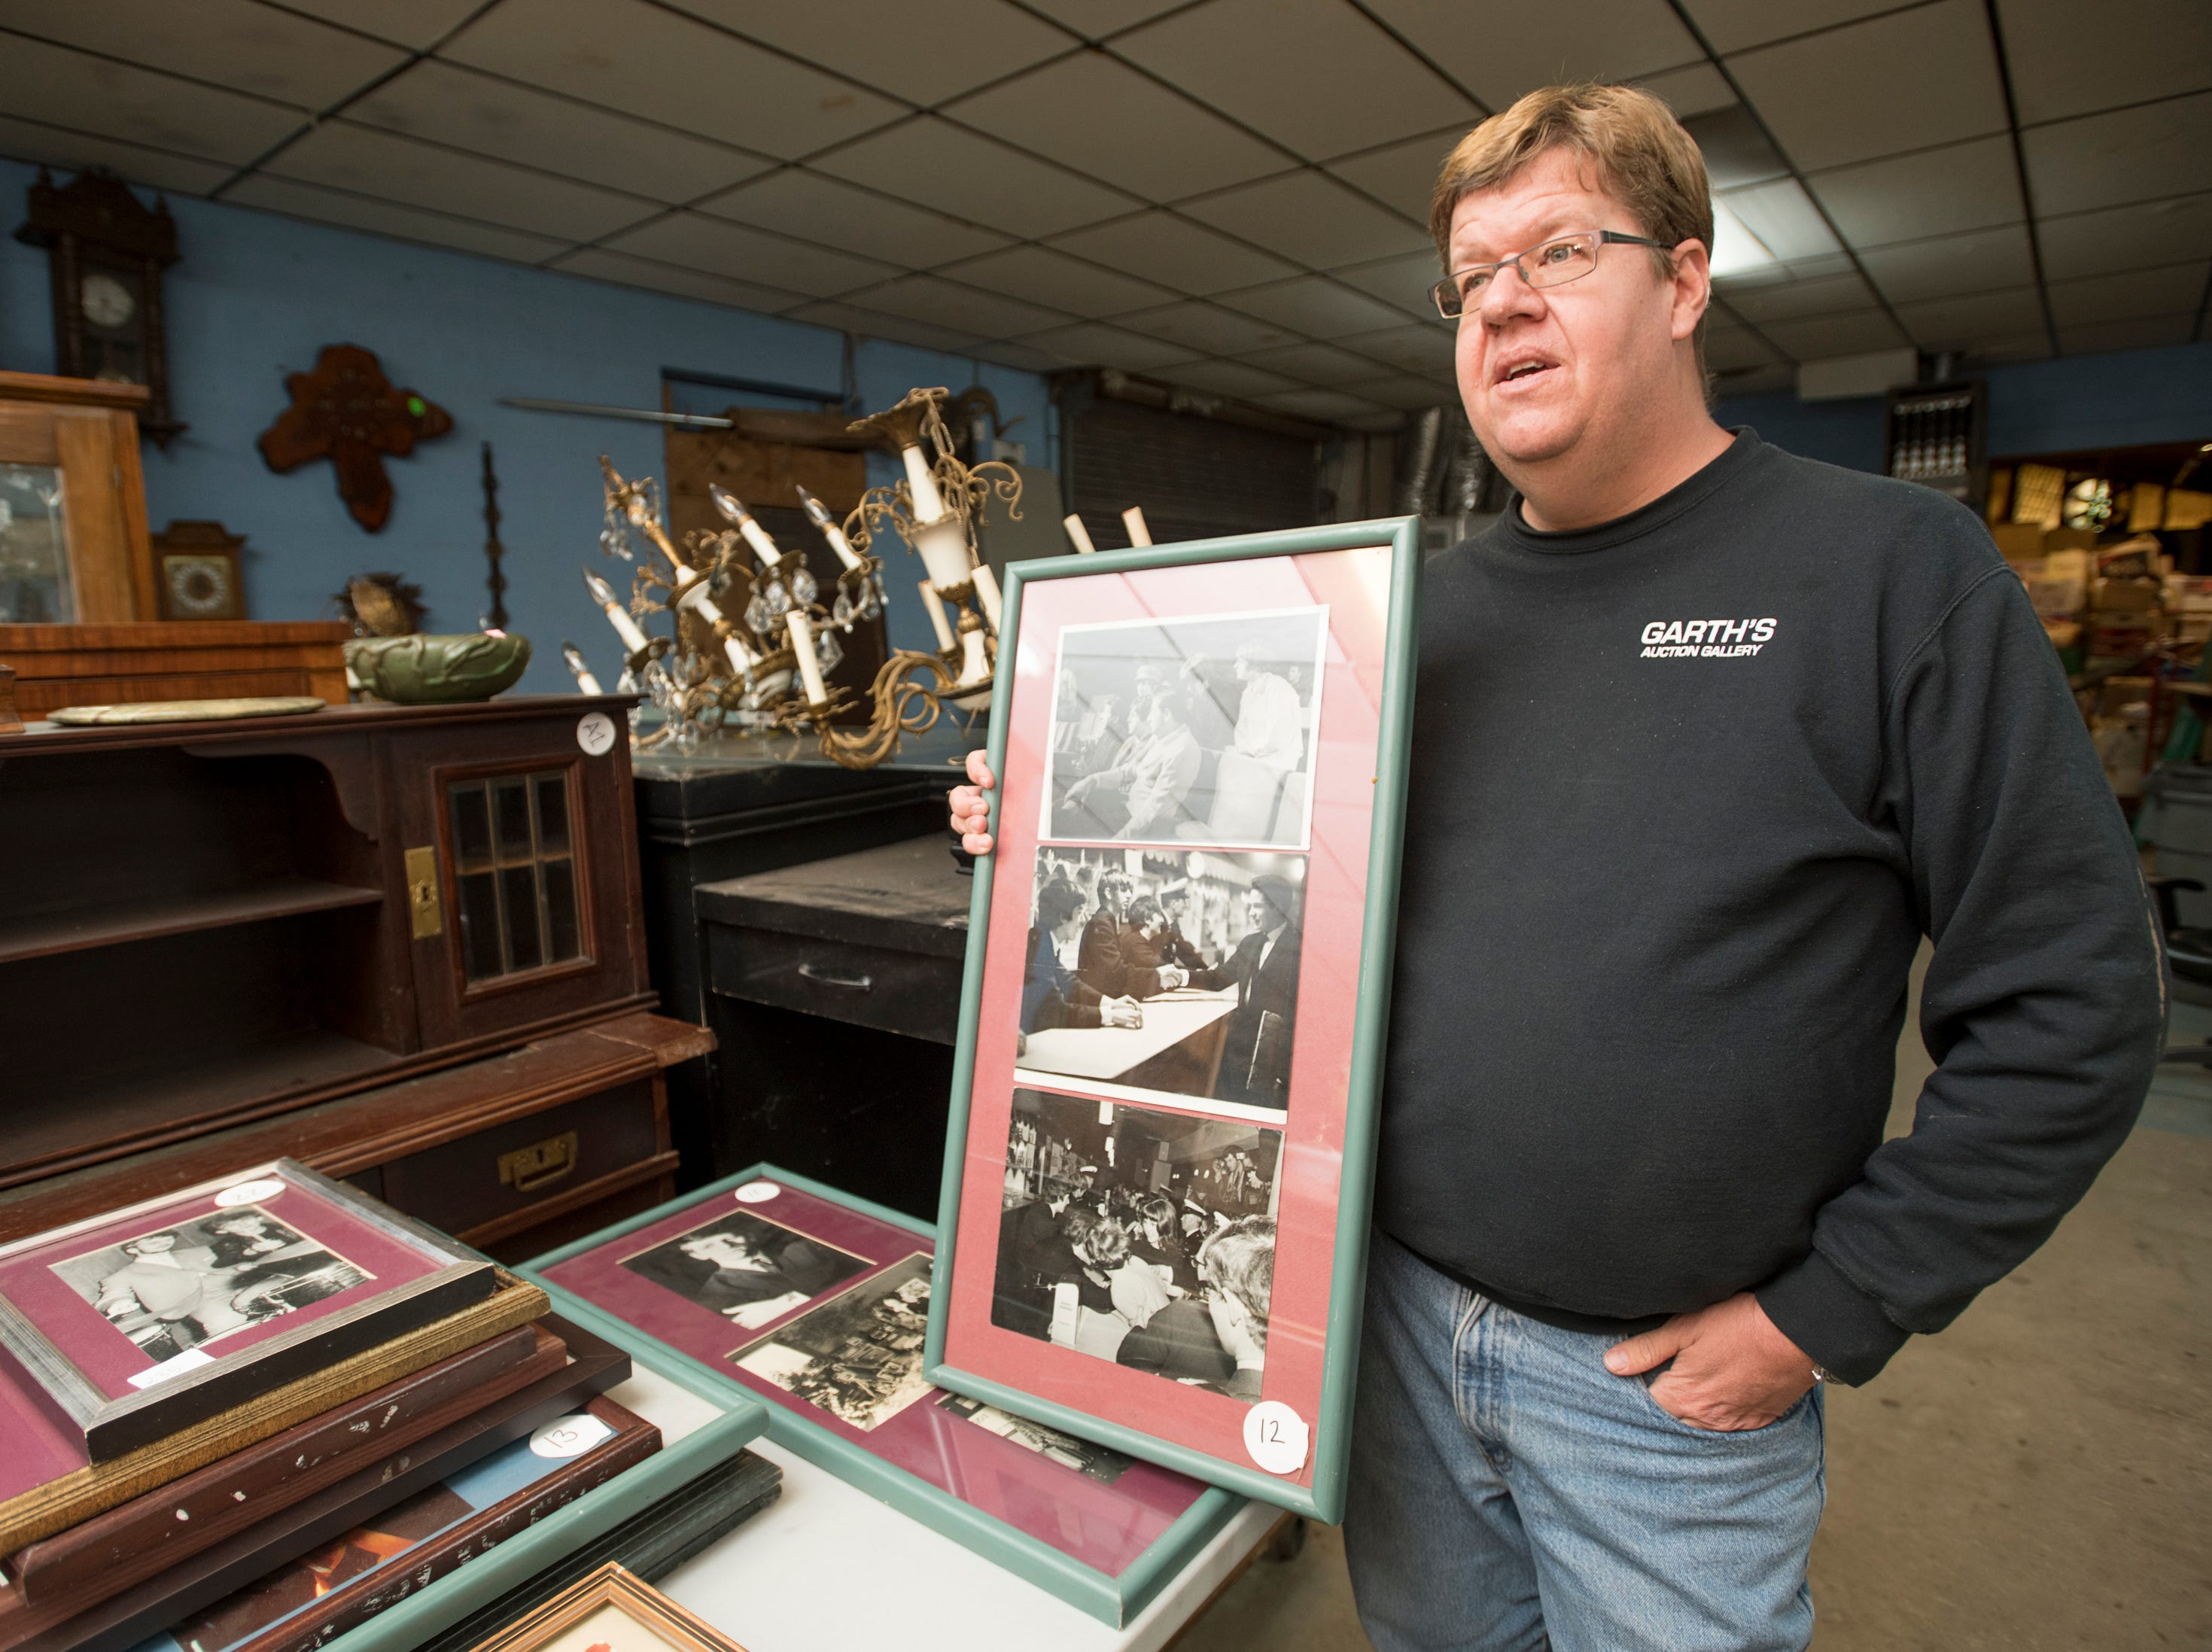 Owner Robert Garth talks about original Beatles photographic prints at Garth's Auction & Antiques on Navy Boulevard in Pensacola on Wednesday, November 28, 2018.  These and other items will be up for sale during their auction on Friday, November 30th.